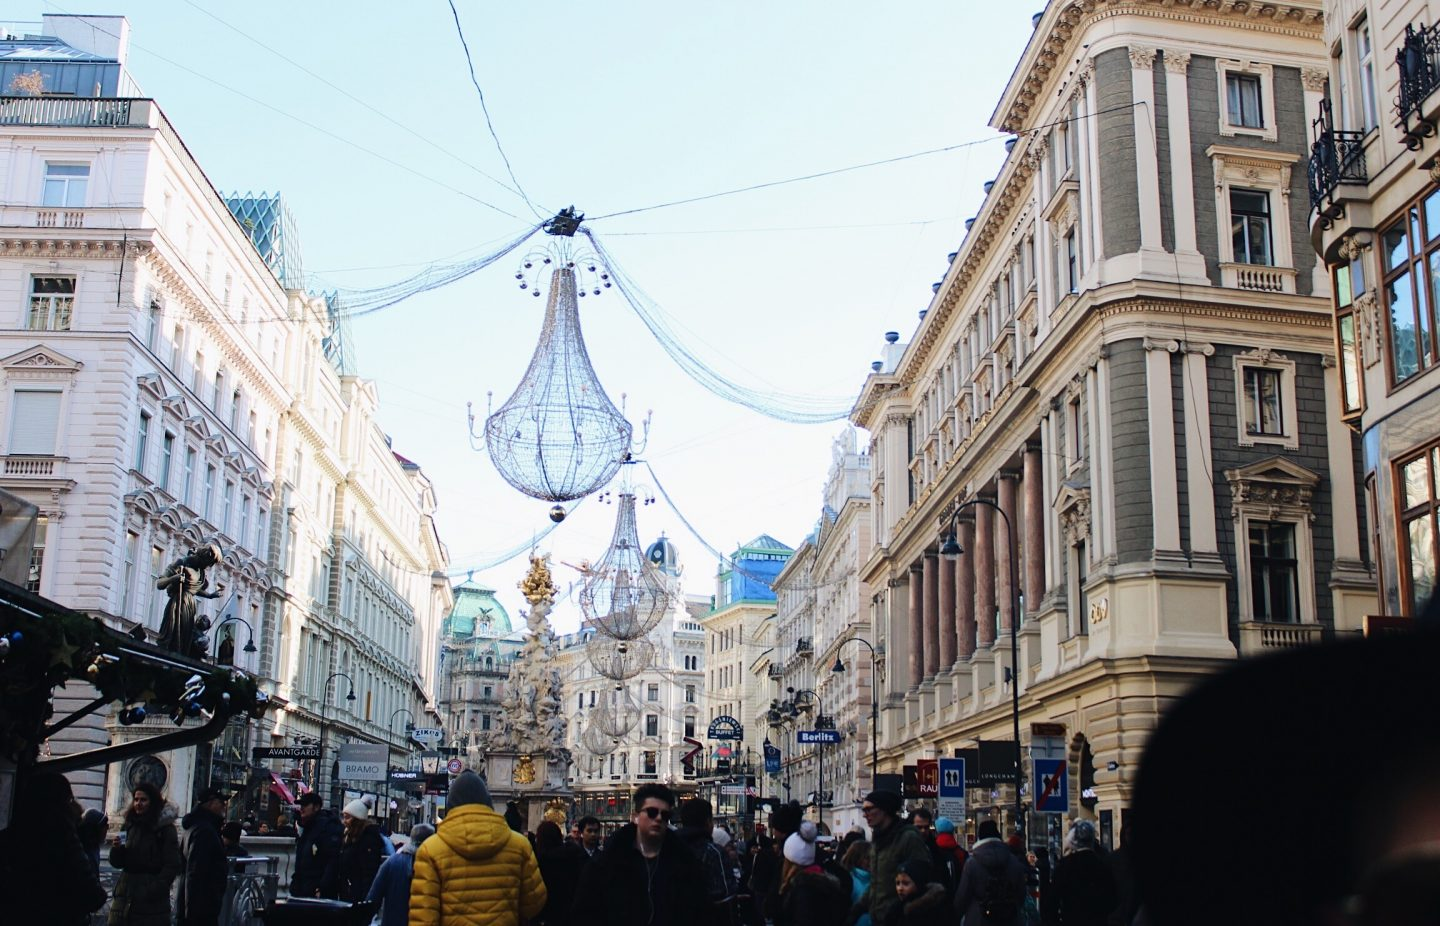 The main street in Vienna, Austria all decorated for Christmas